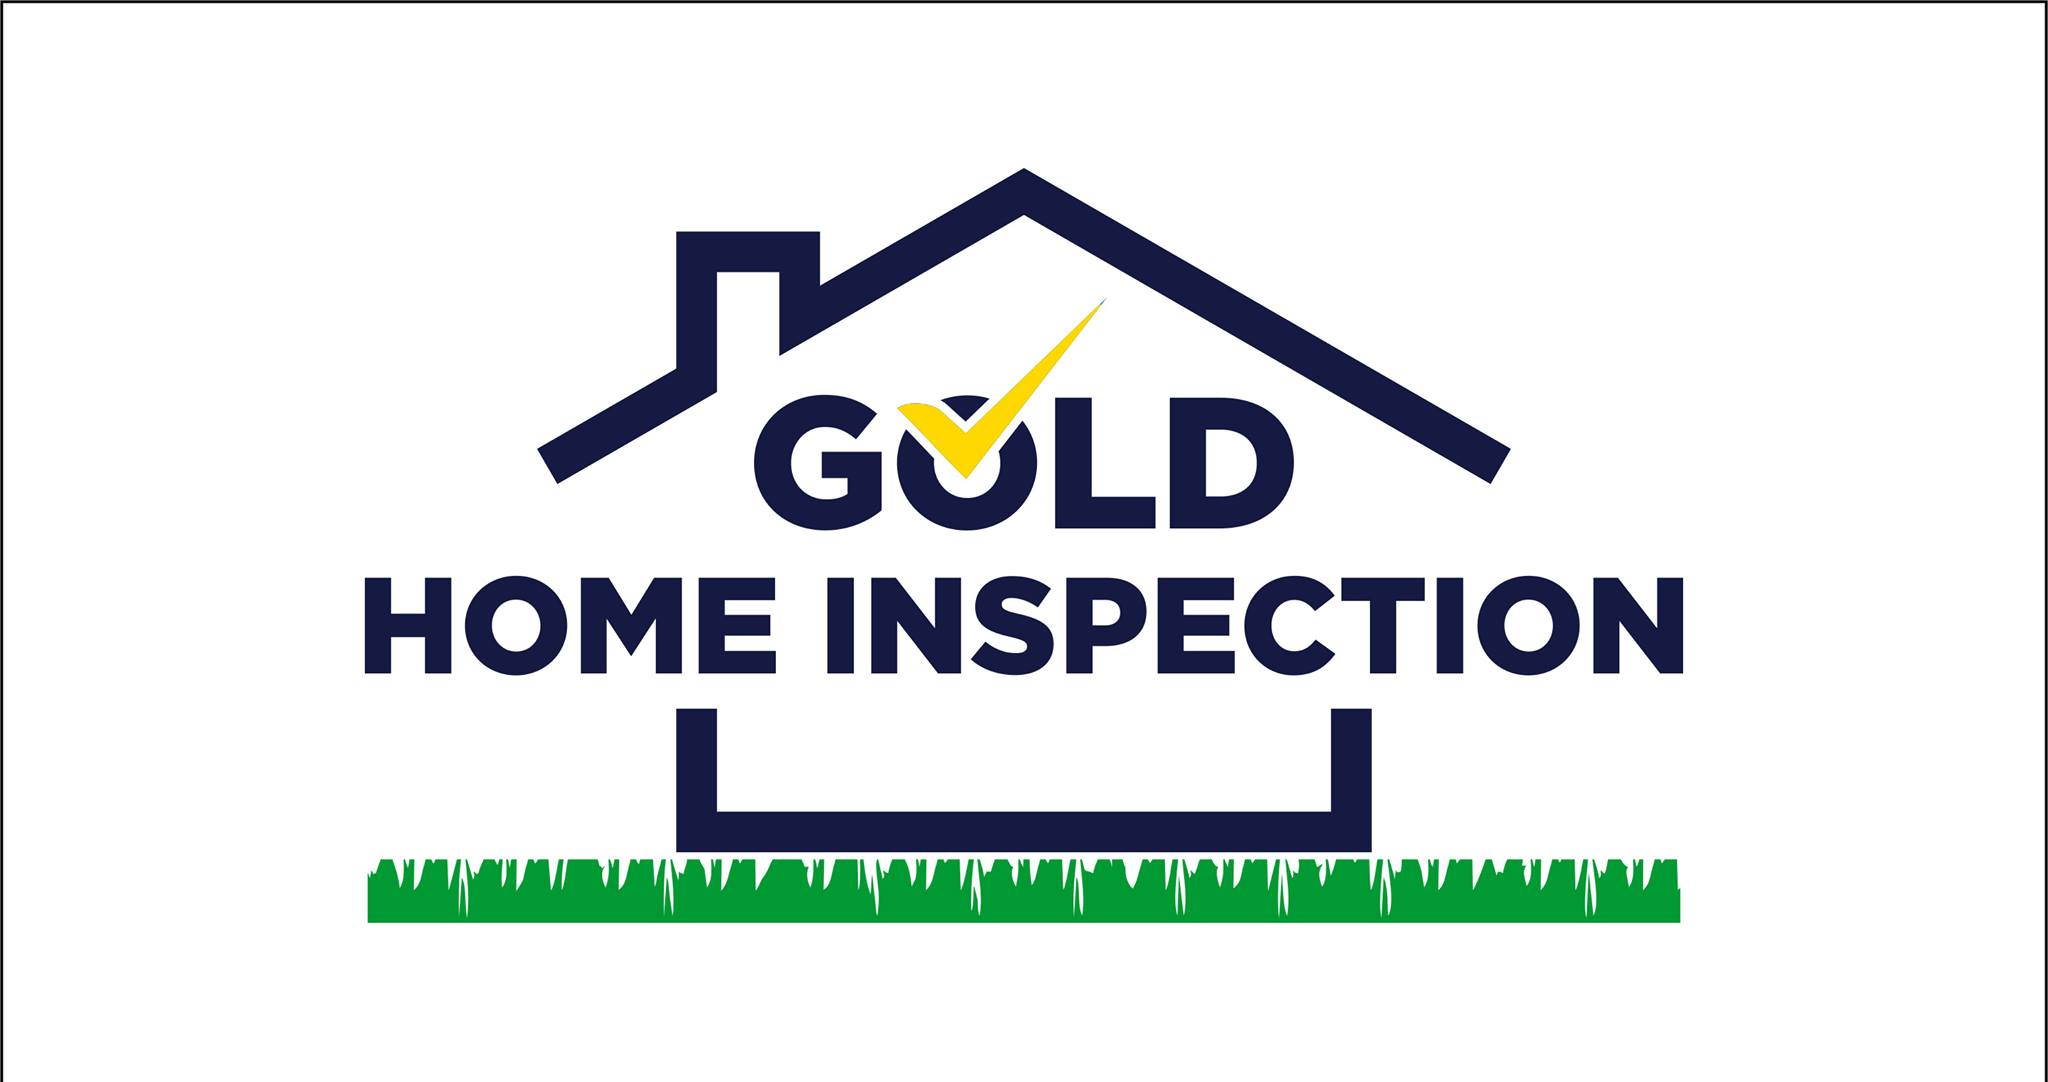 Gold Home Inspection, LLC